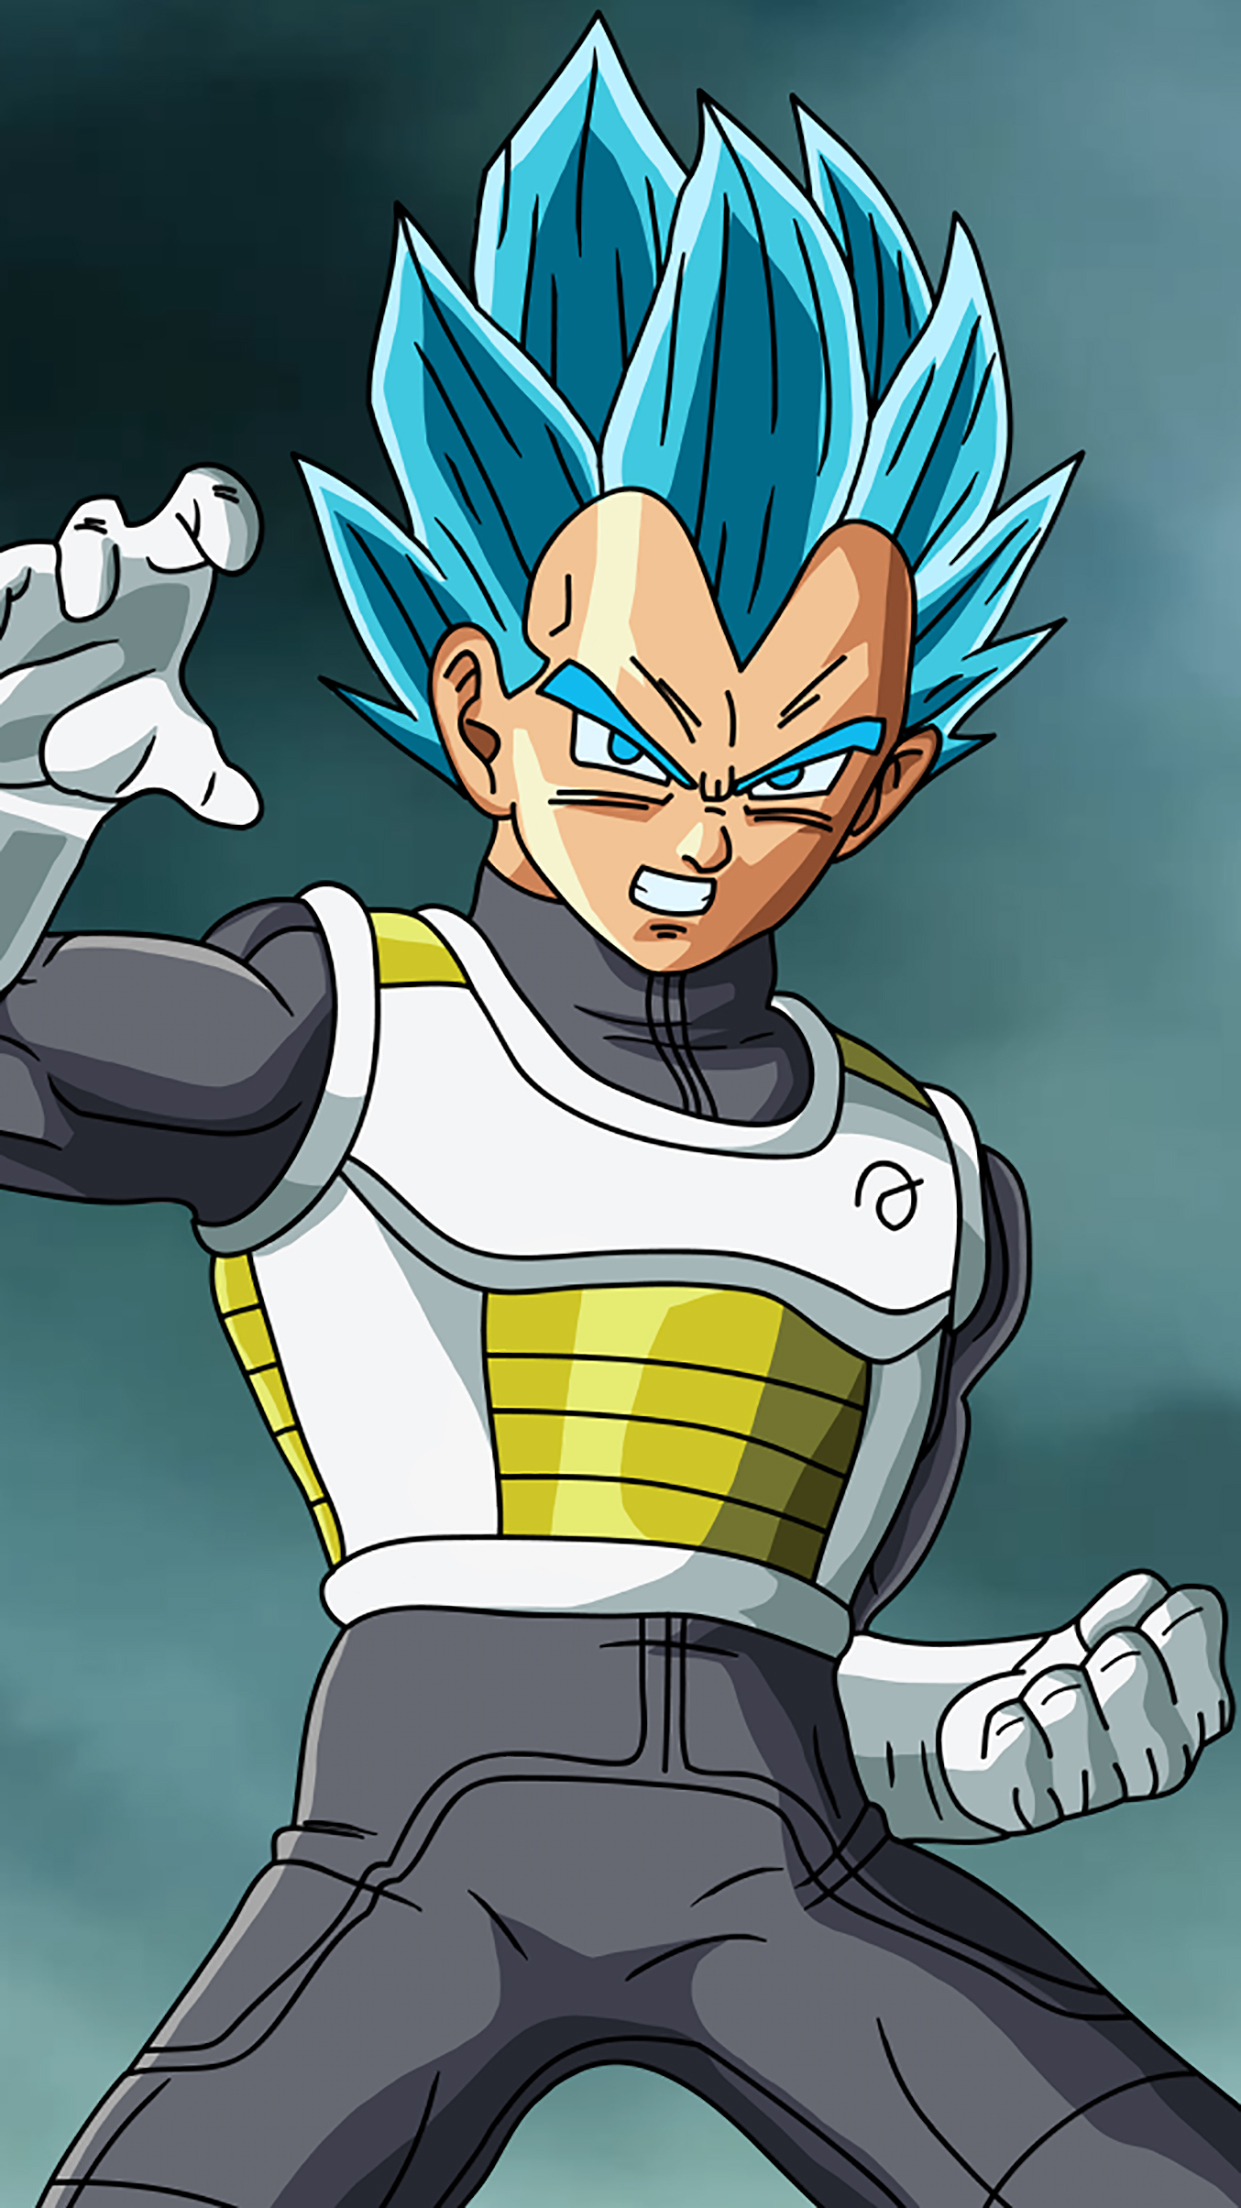 Wallpaper For Iphone 5c Free Special Vegeta Standing And Mad Wallpaper For Iphone X